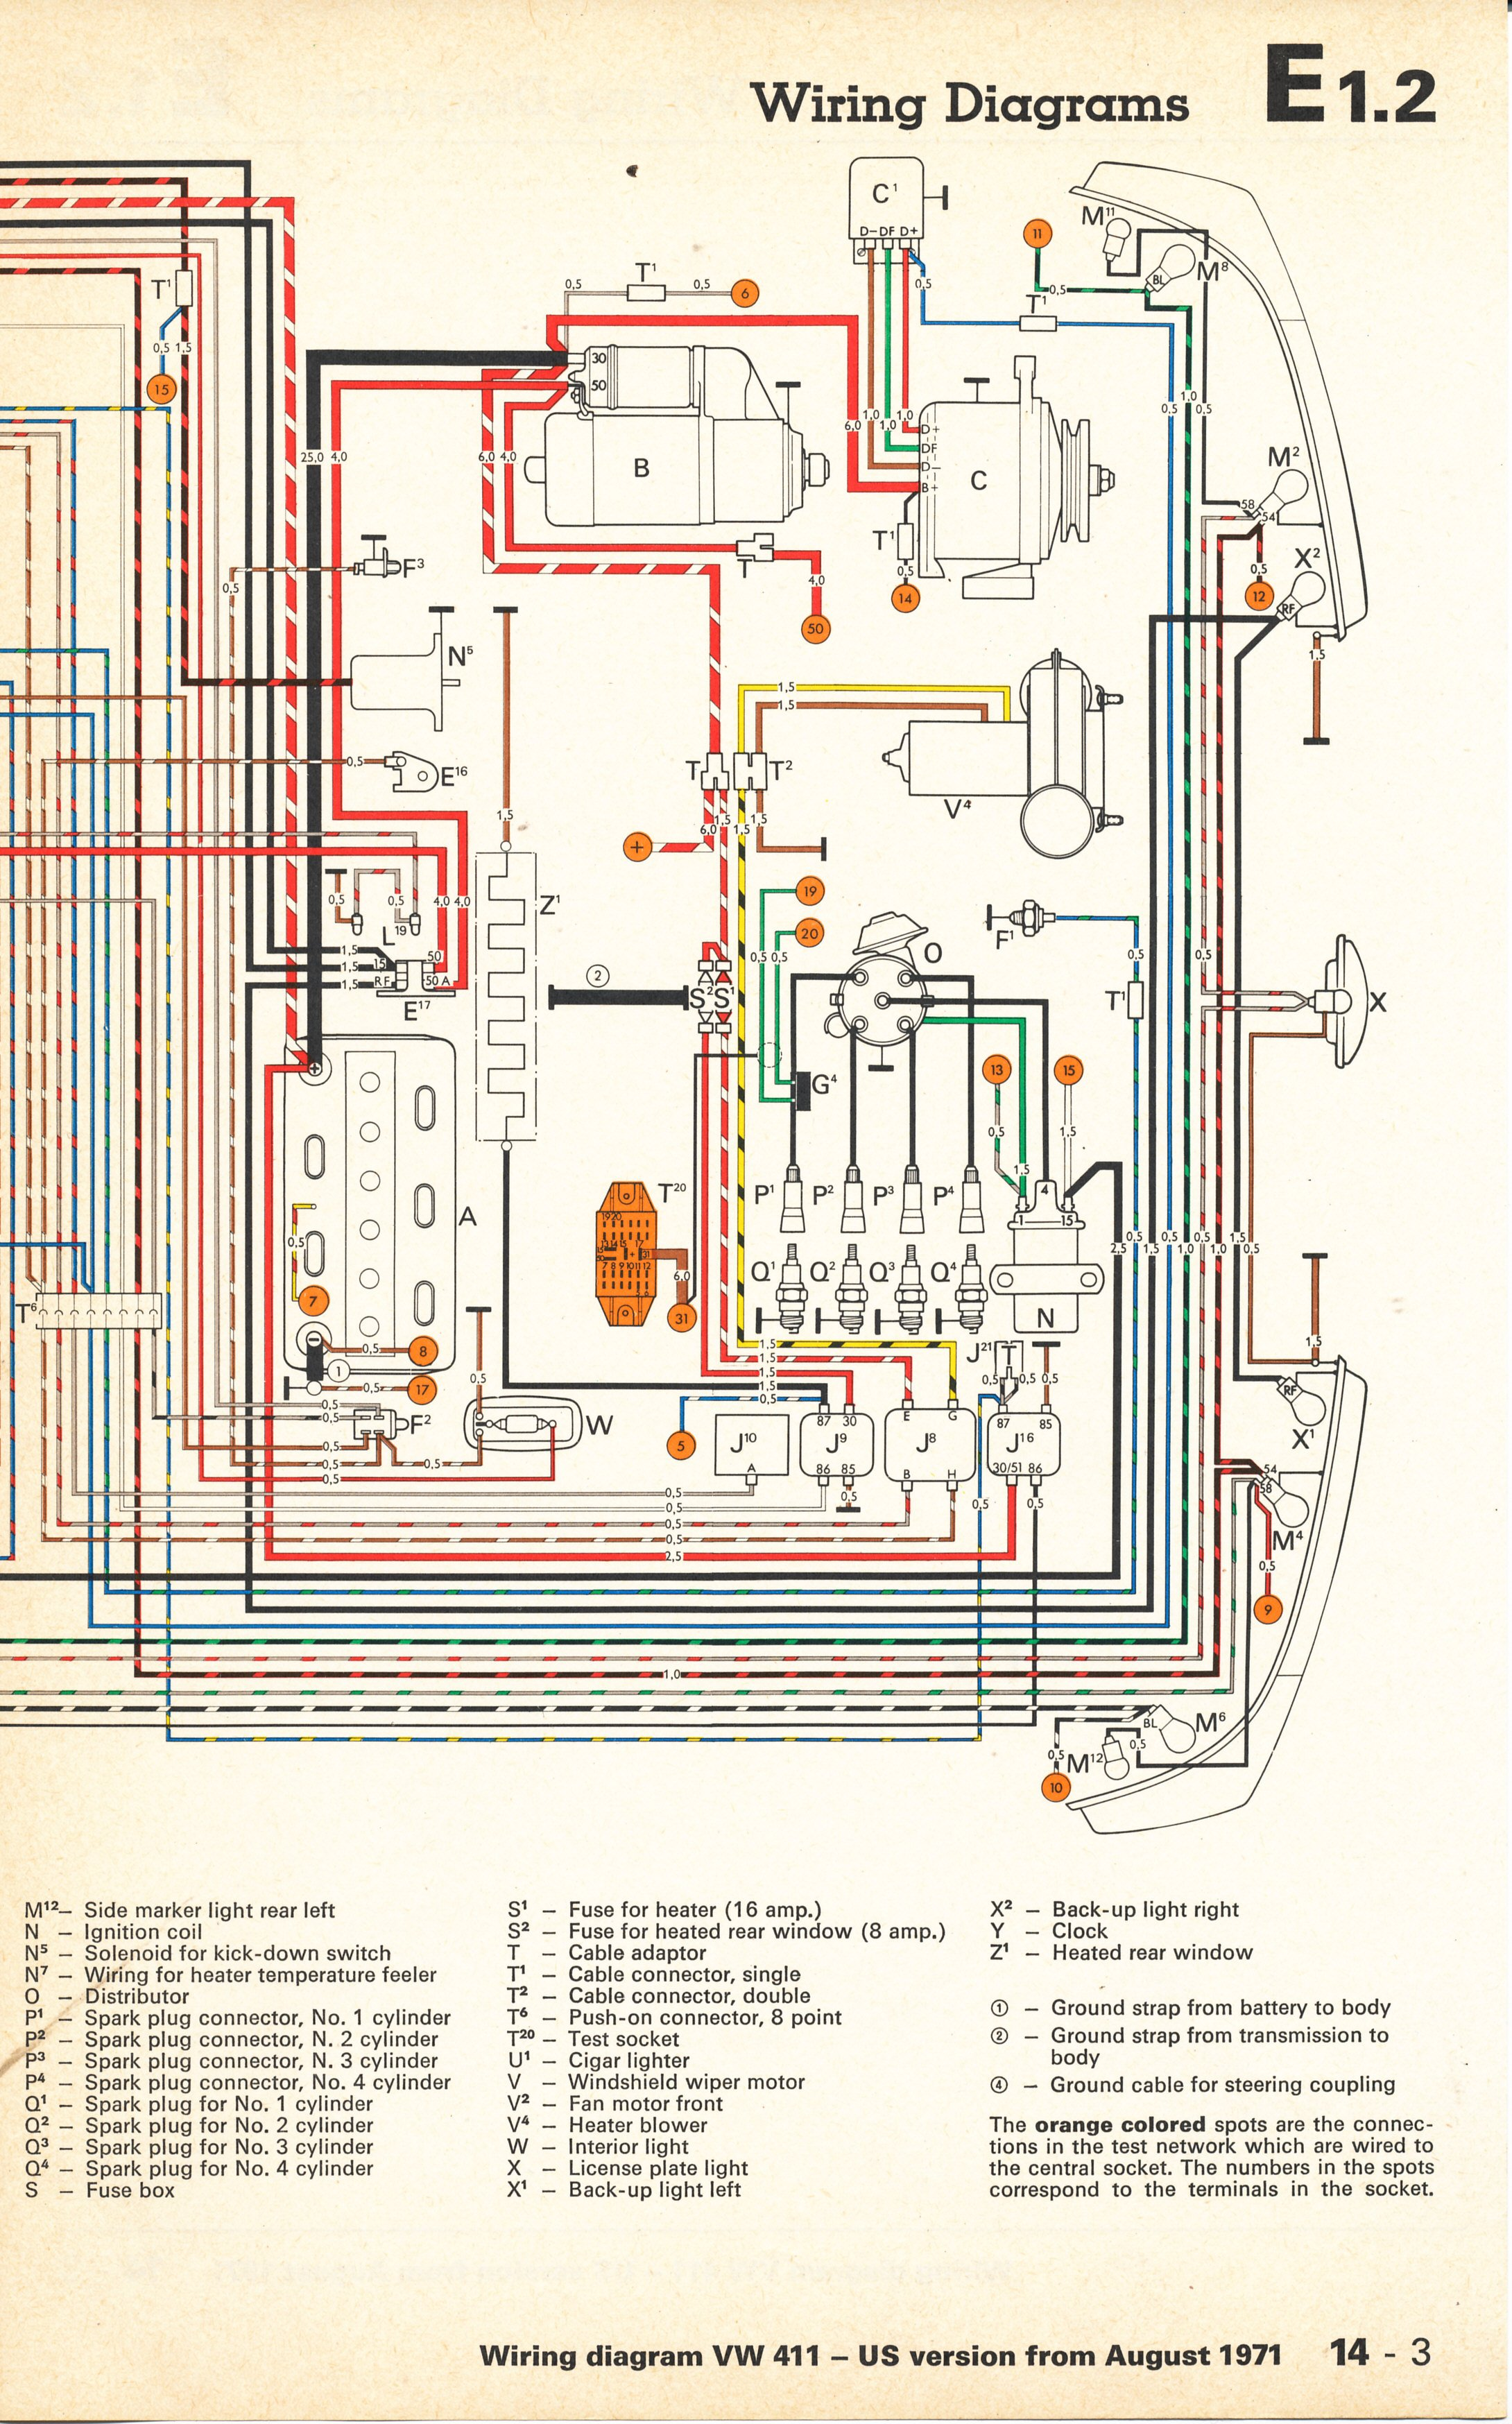 411_1972b_usversion?resize\\\\\\\\\\\\\\\=665%2C1066 impala heater wiring diagram on impala download wirning diagrams 1964 impala ss wiring diagram at reclaimingppi.co